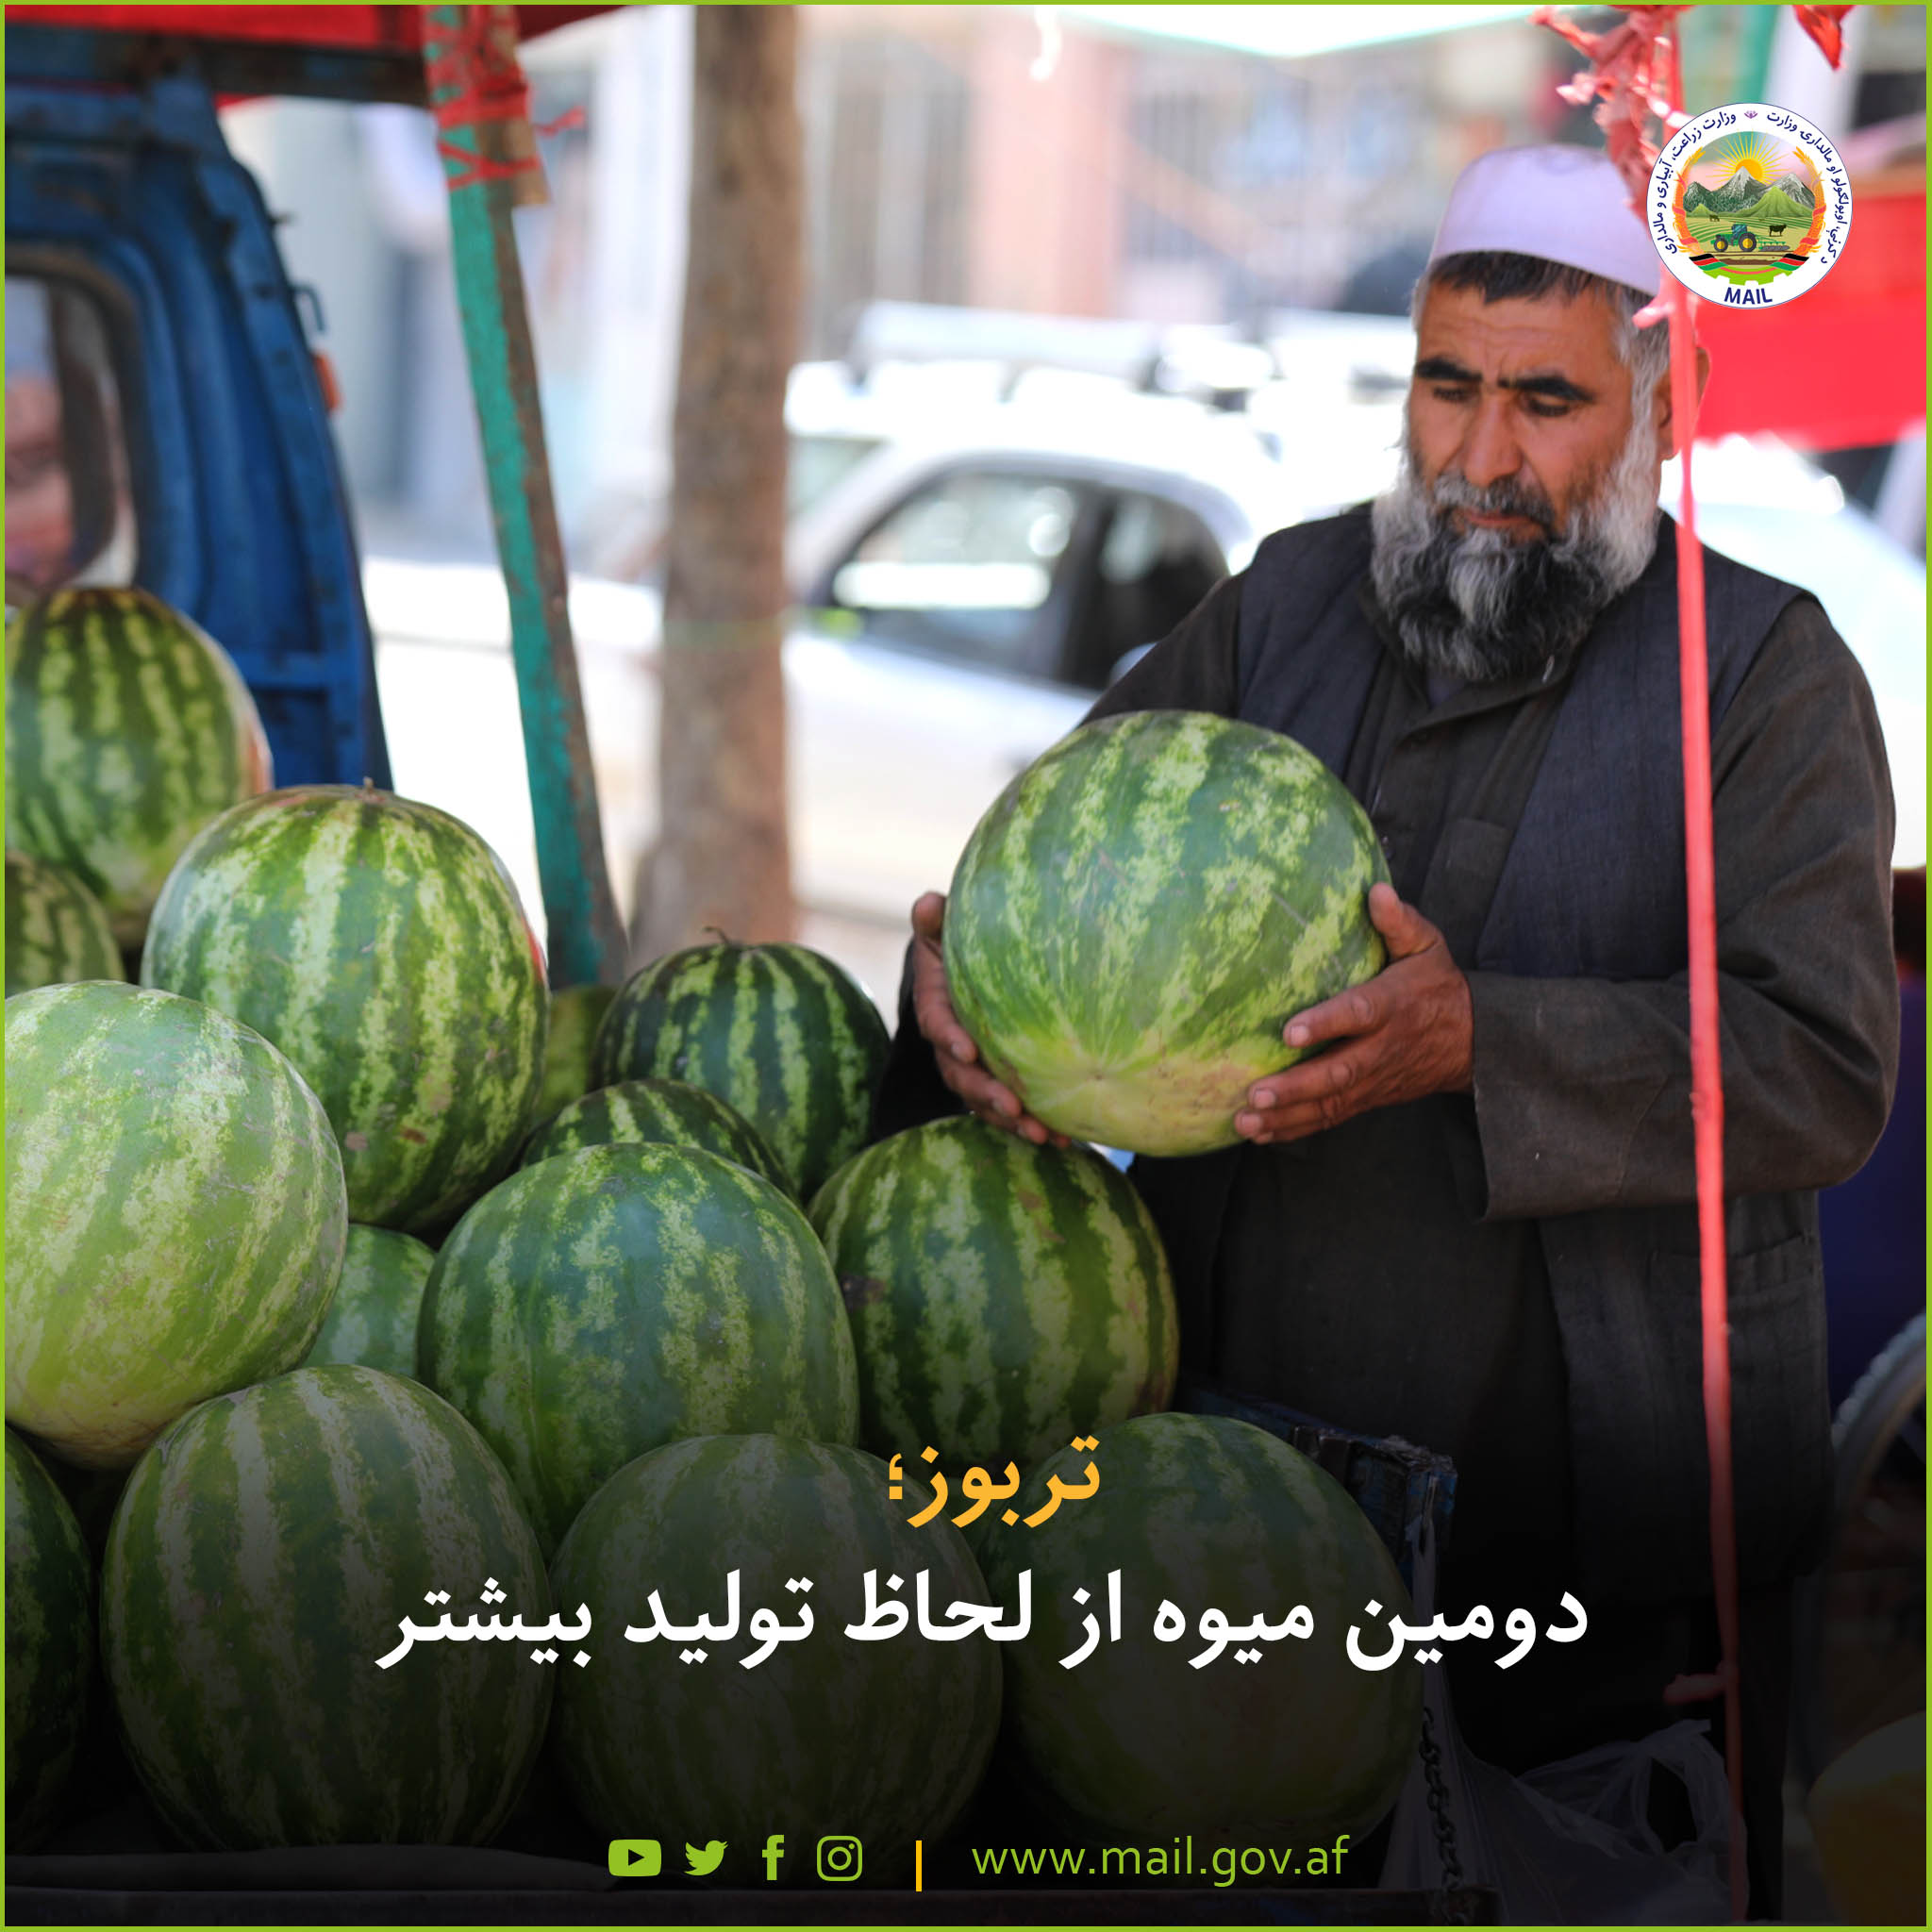 Watermelon;  Second fruit in terms of more production